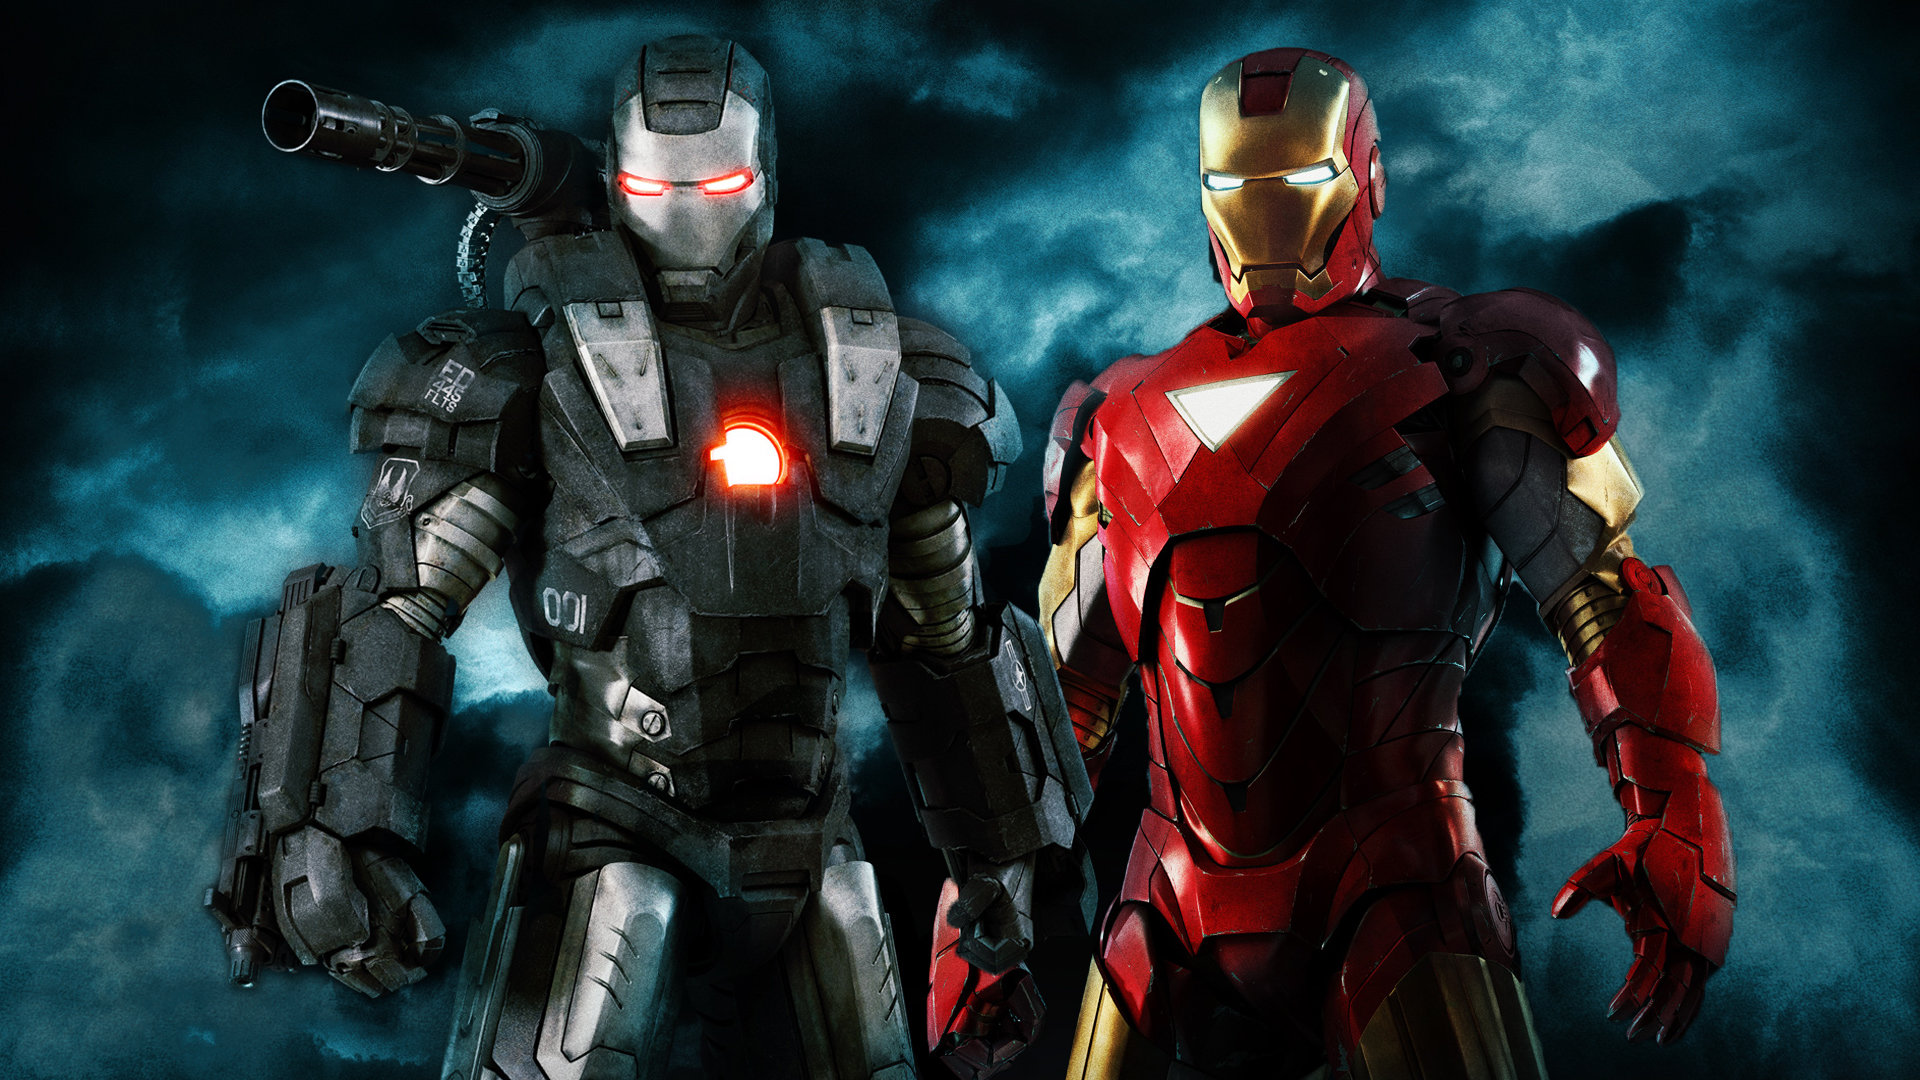 Iron Man 2 wallpapers HD for desktop backgrounds